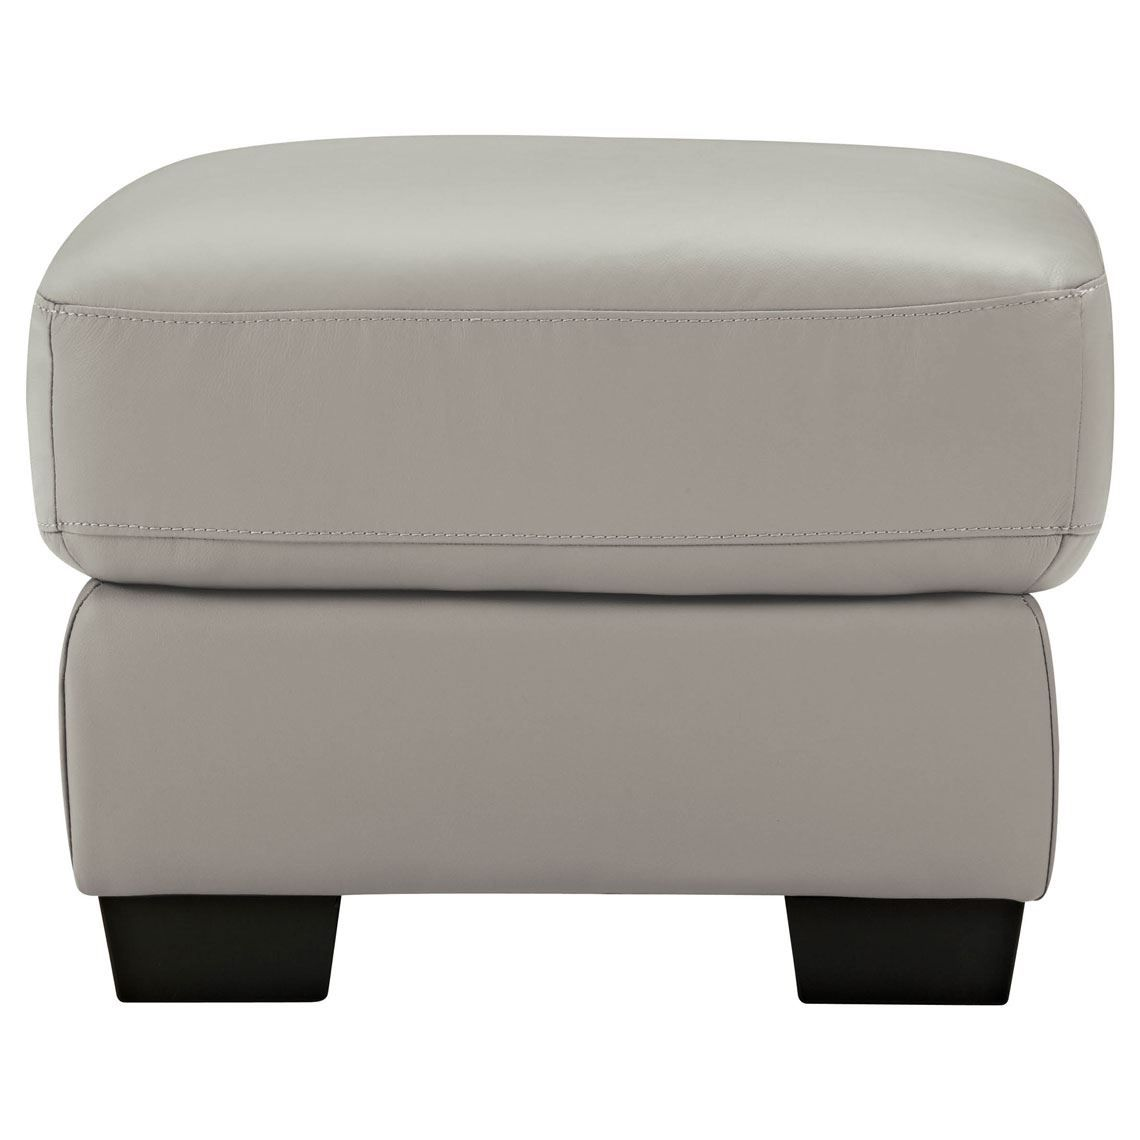 Lucas Leather Ottoman Leather Ottoman Ottoman Seat View